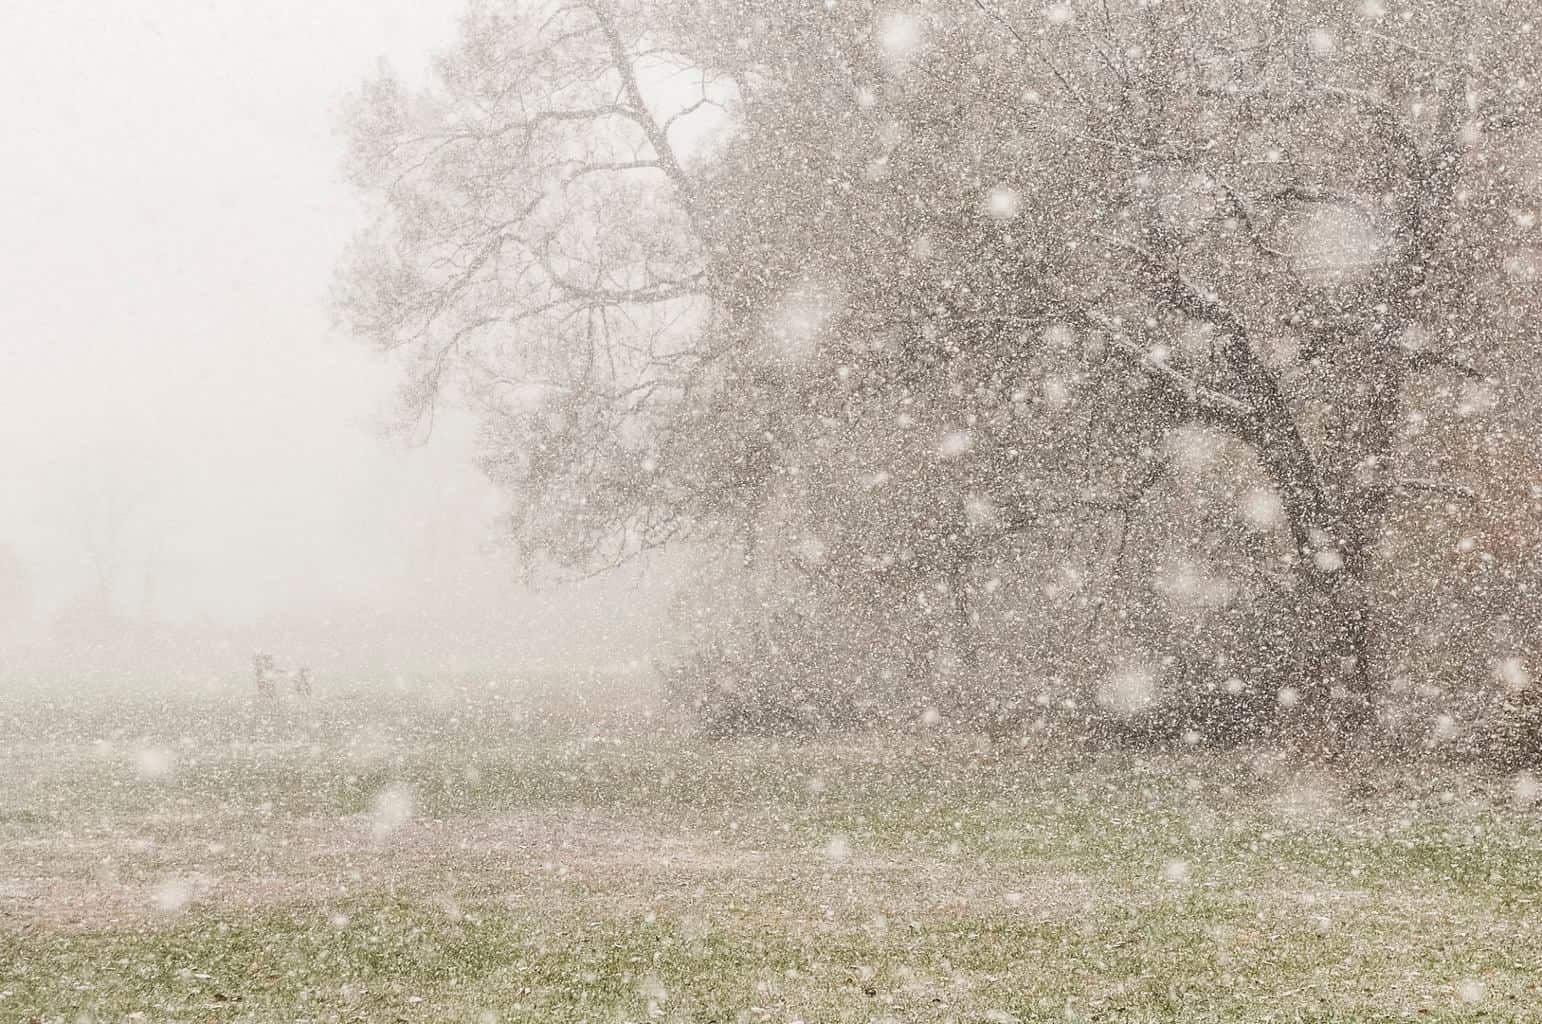 A convective snow squall I witnessed this evening in Underhill, VT. Vis briefly dropped to 1/4 mile.